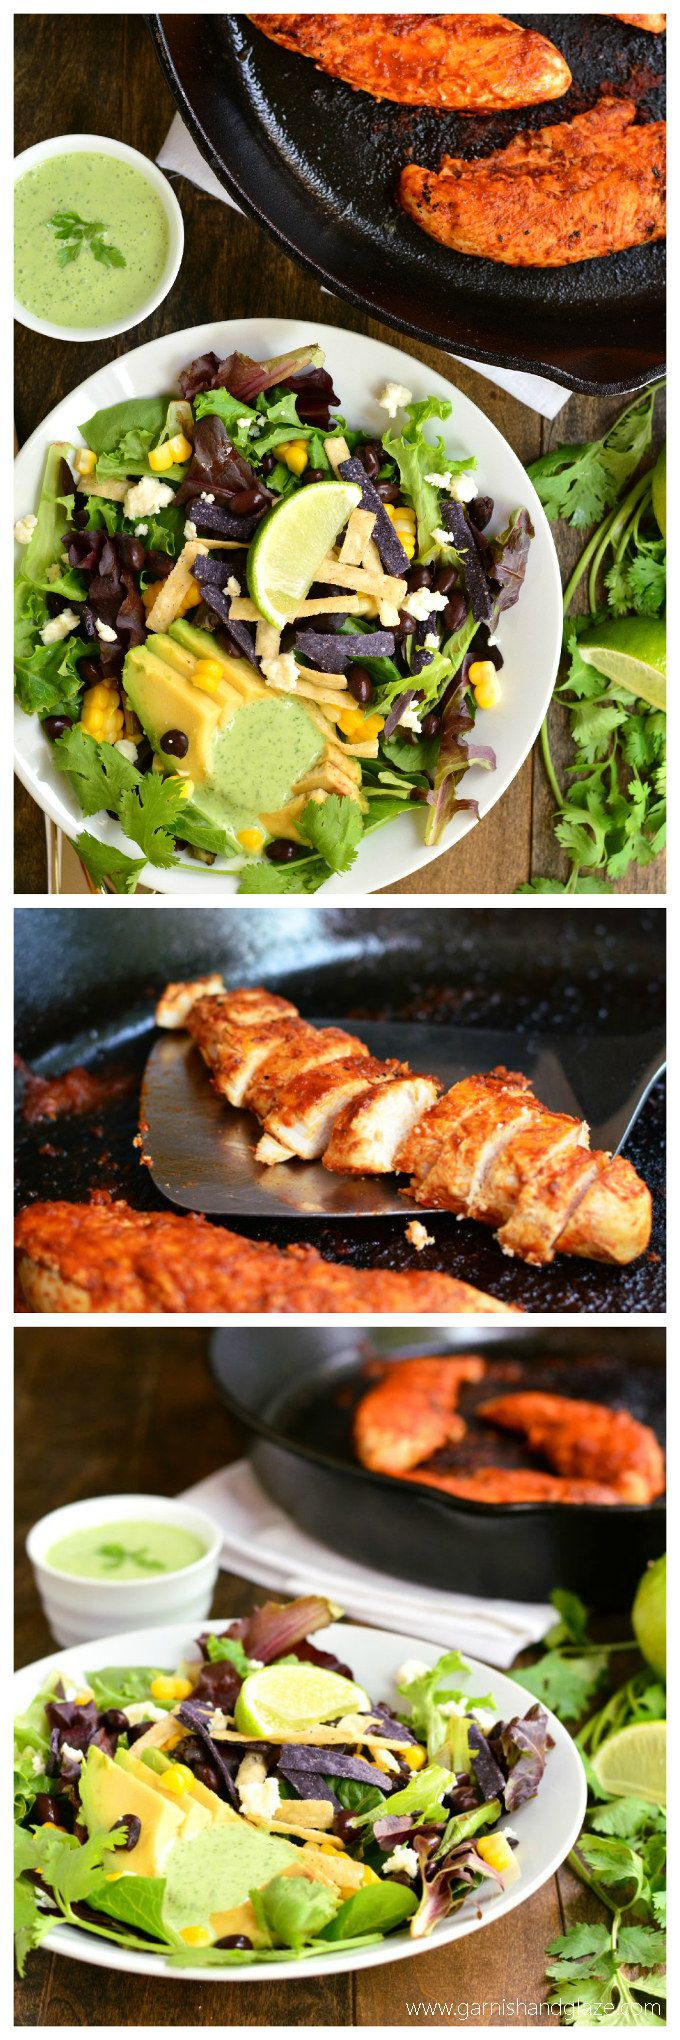 ... Salads on Pinterest | Pomegranates, Chipotle chicken and Tomato salad